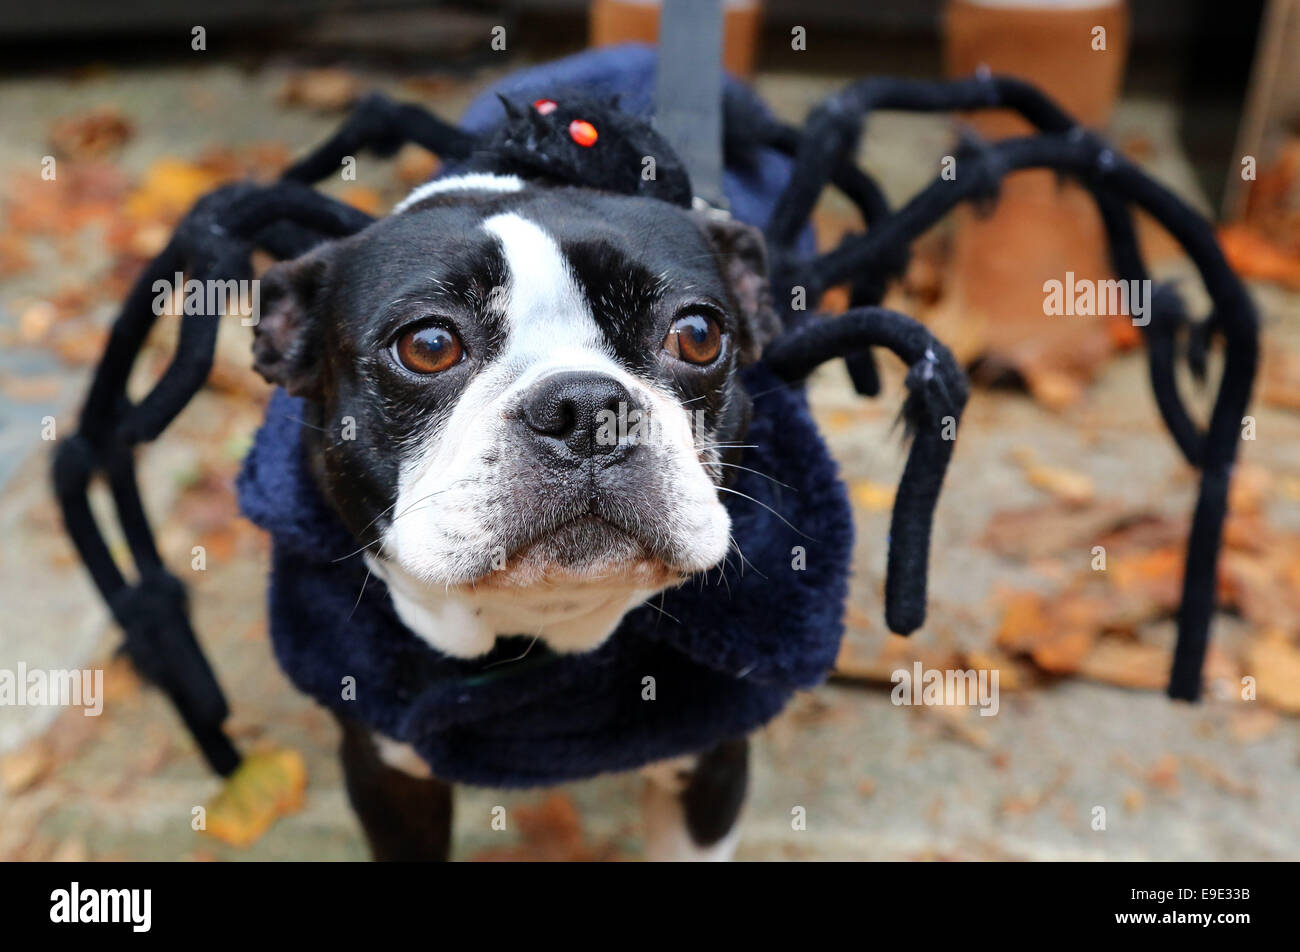 Dog Clothes Uk Stock Photos Dog Clothes Uk Stock Images Alamy